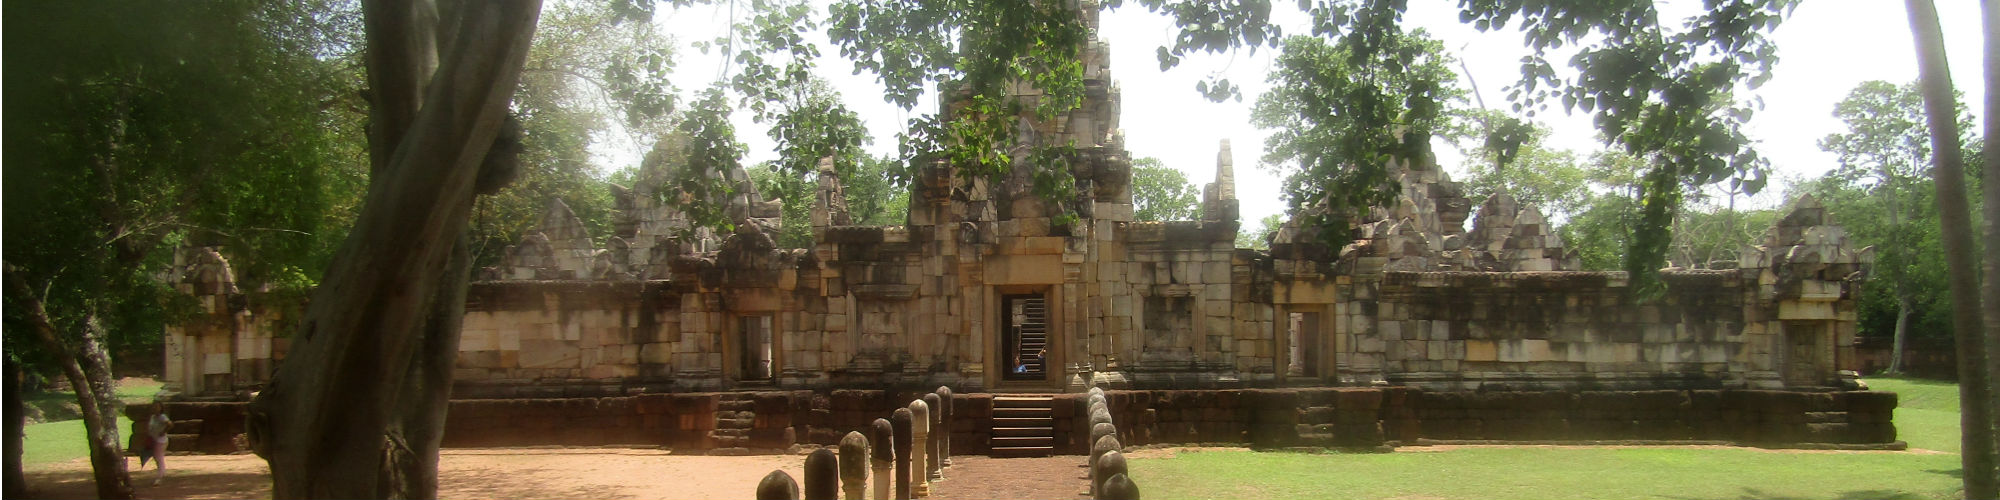 Prasat Sdok Kok Thom, Khok Sung District, Sa Kaeo Province